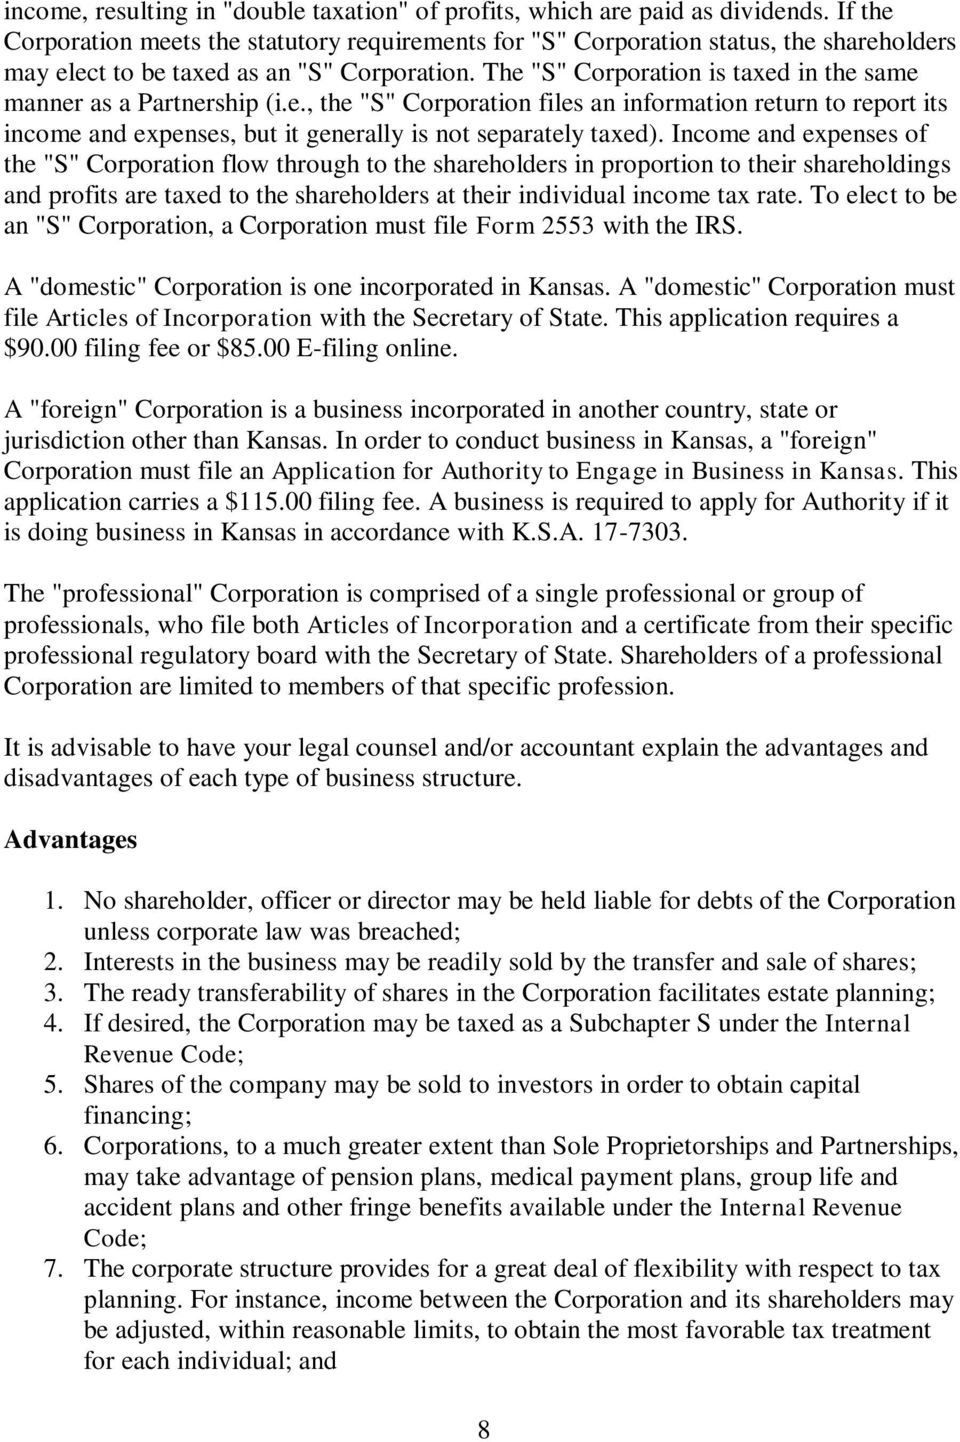 "The ""S"" Corporation is taxed in the same manner as a Partnership (i.e., the ""S"" Corporation files an information return to report its income and expenses, but it generally is not separately taxed)."